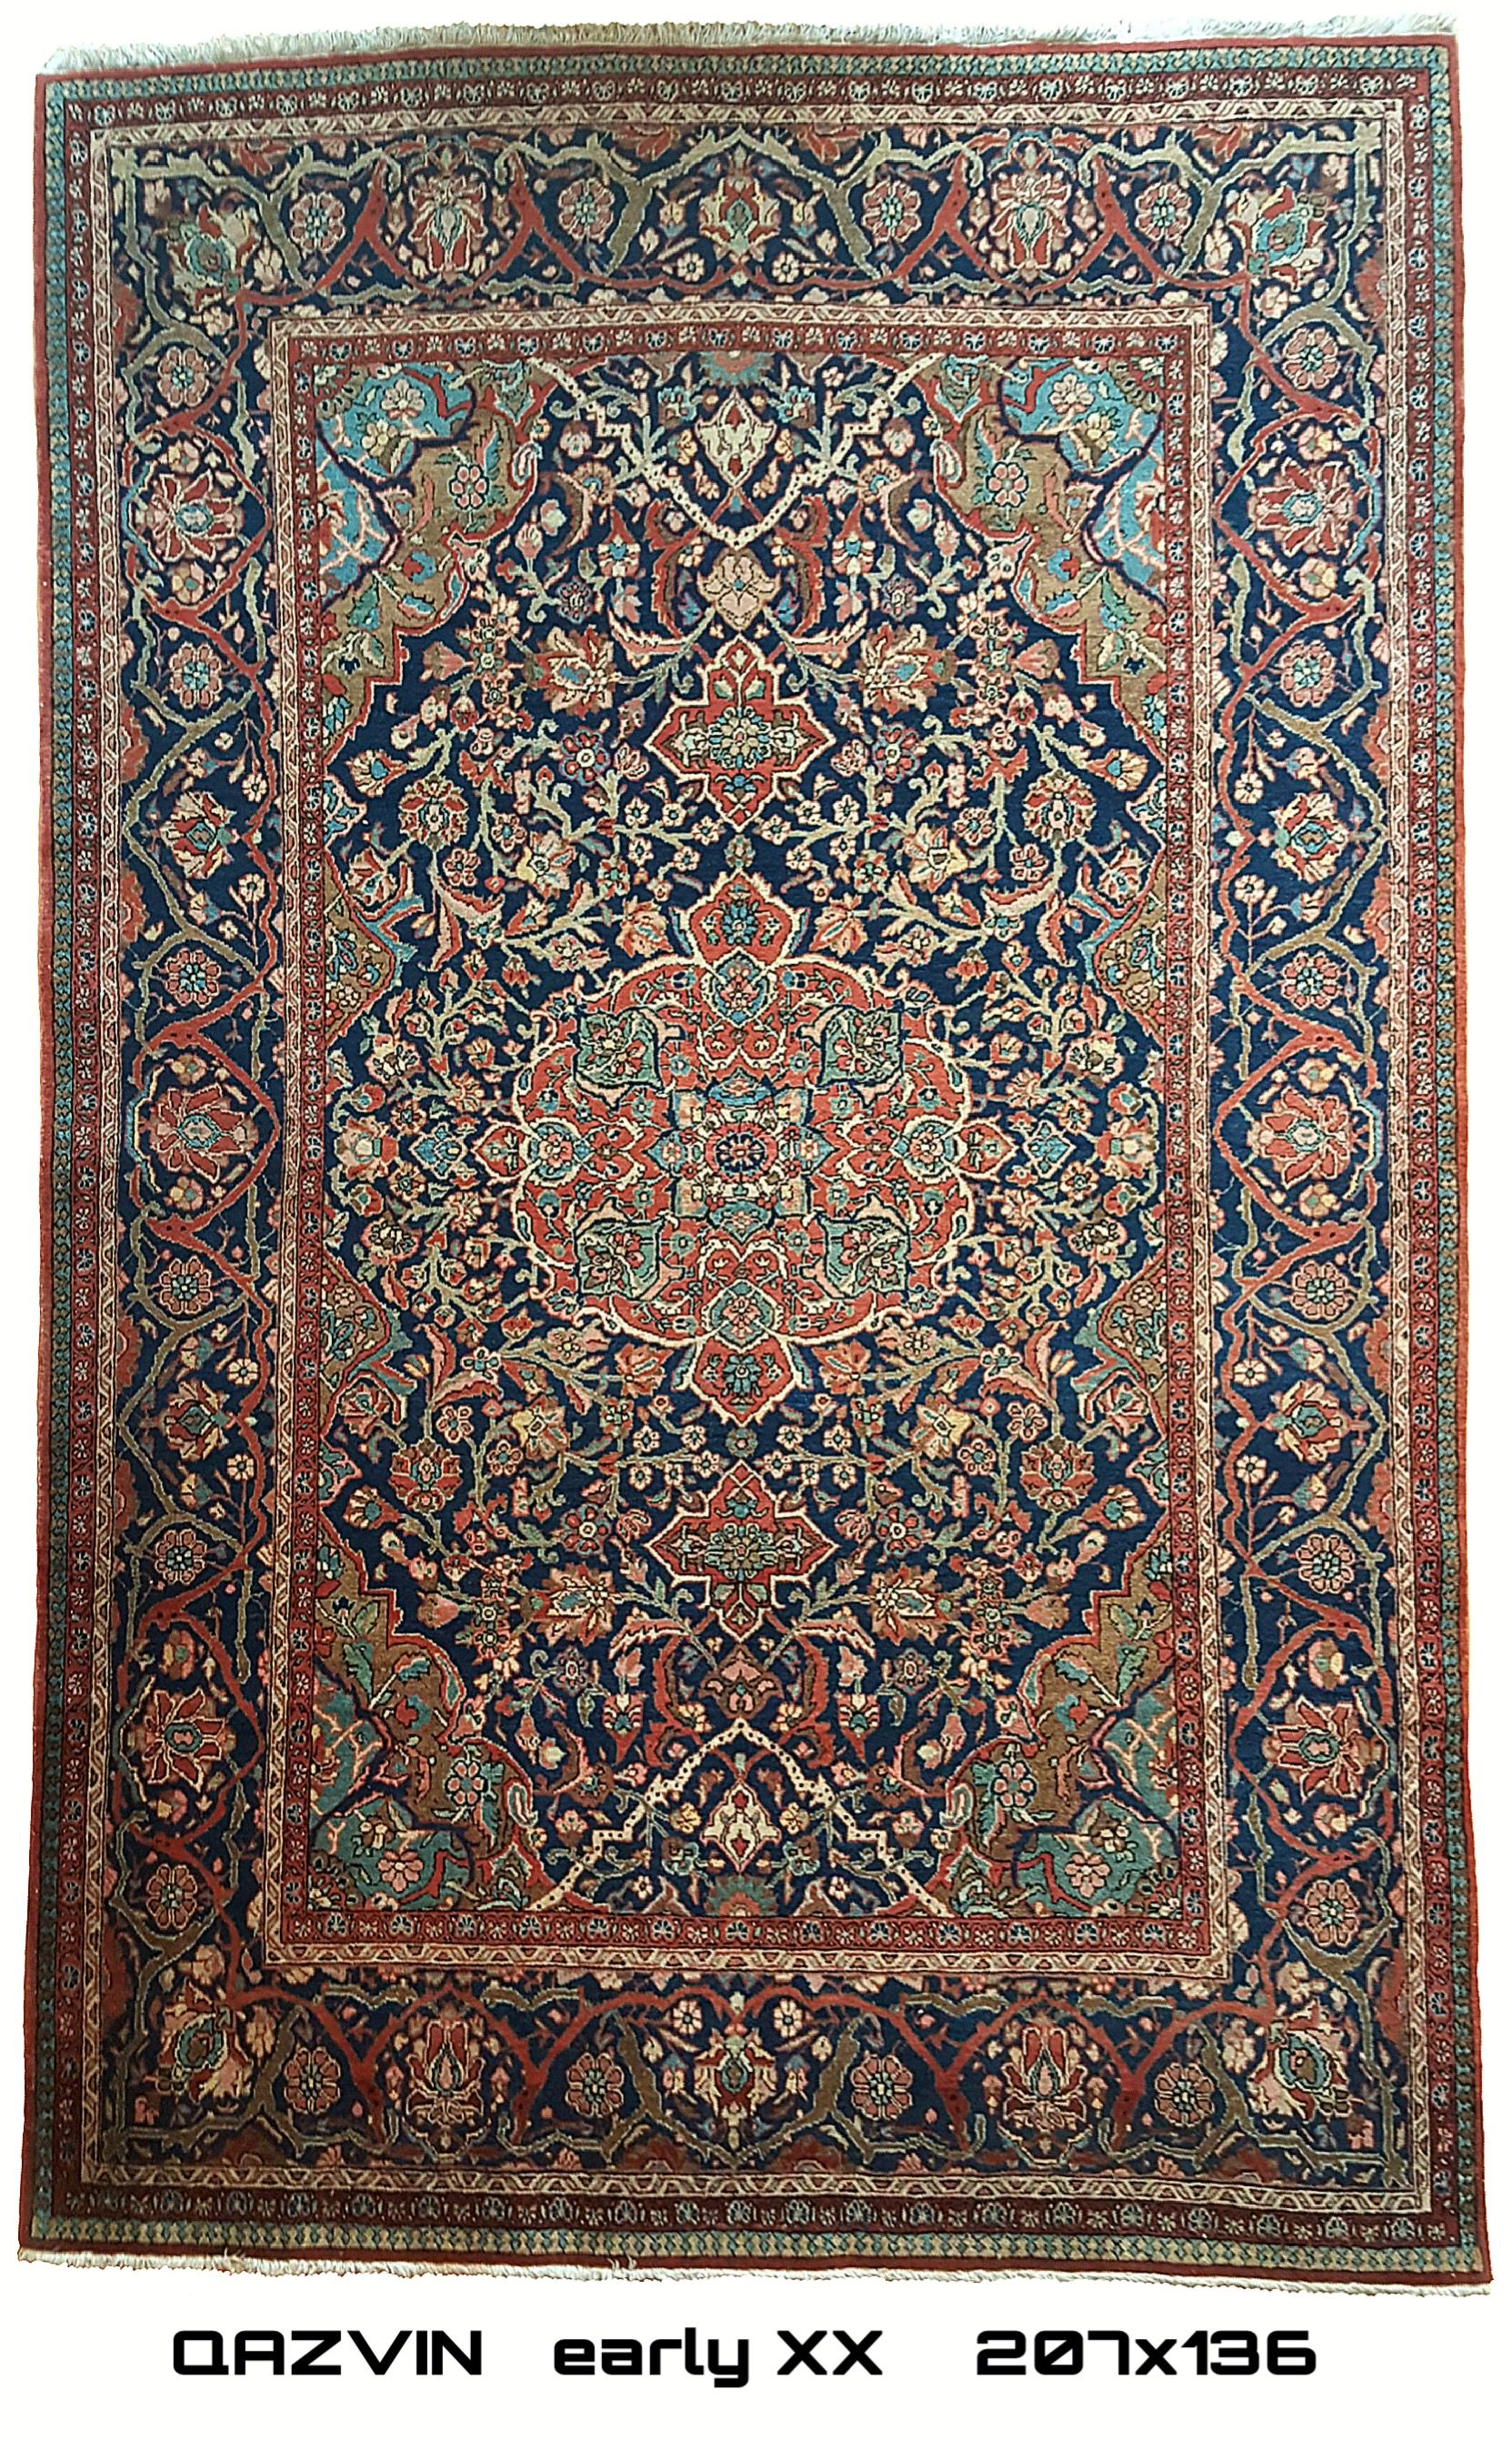 Tappeti Persiani Corridoio Qazvin Antique Persian Carpet Early Xx 207x136 Antique Rugs